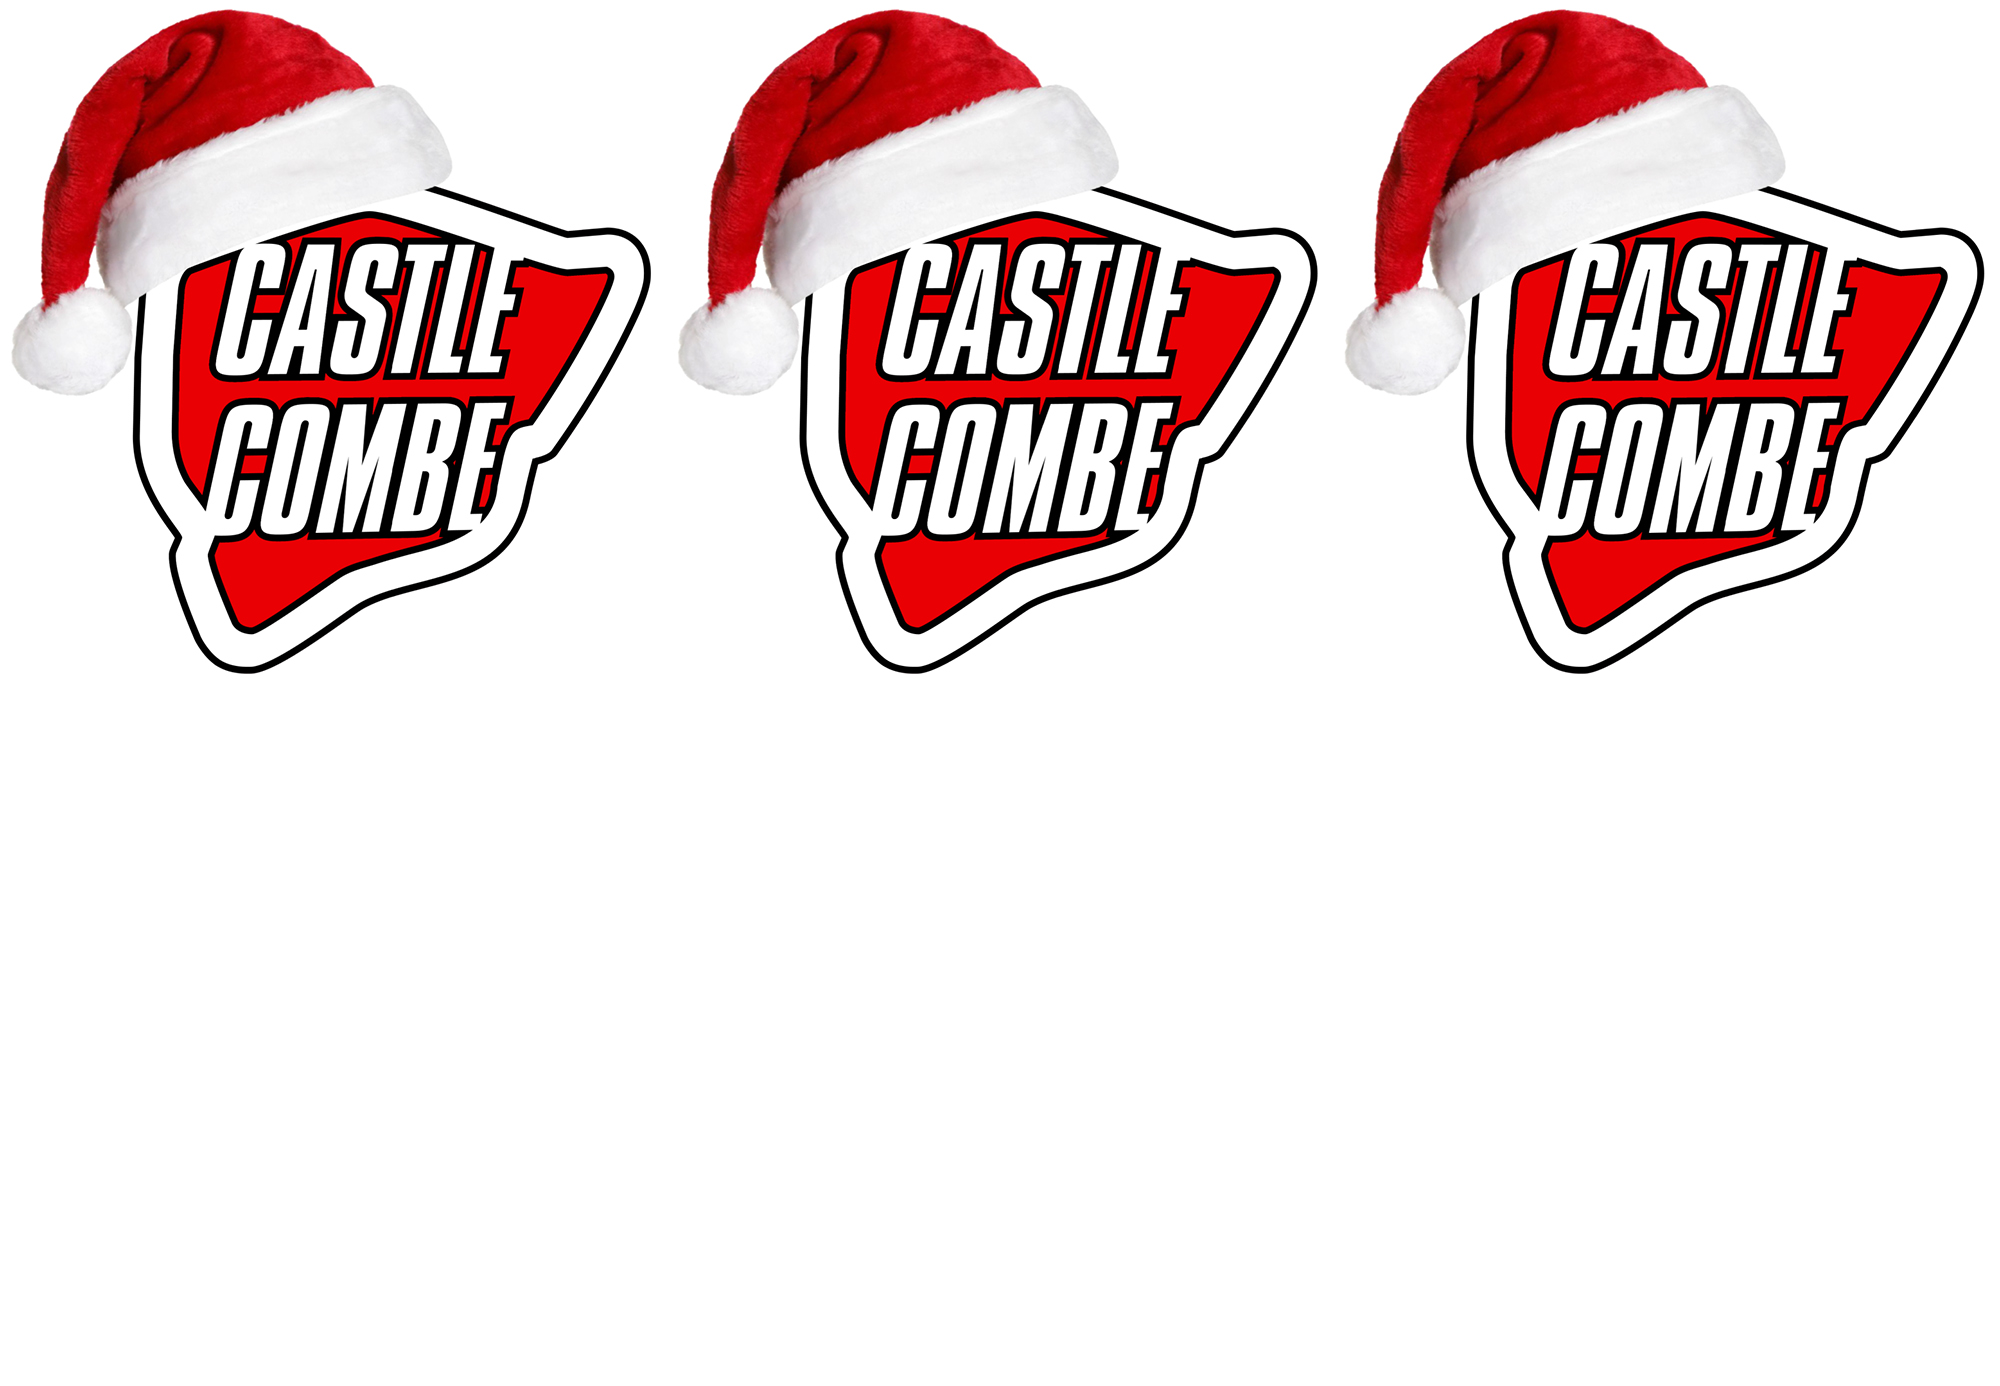 CHRISTMAS HAS LANDED AT CASTLE COMBE CIRCUIT